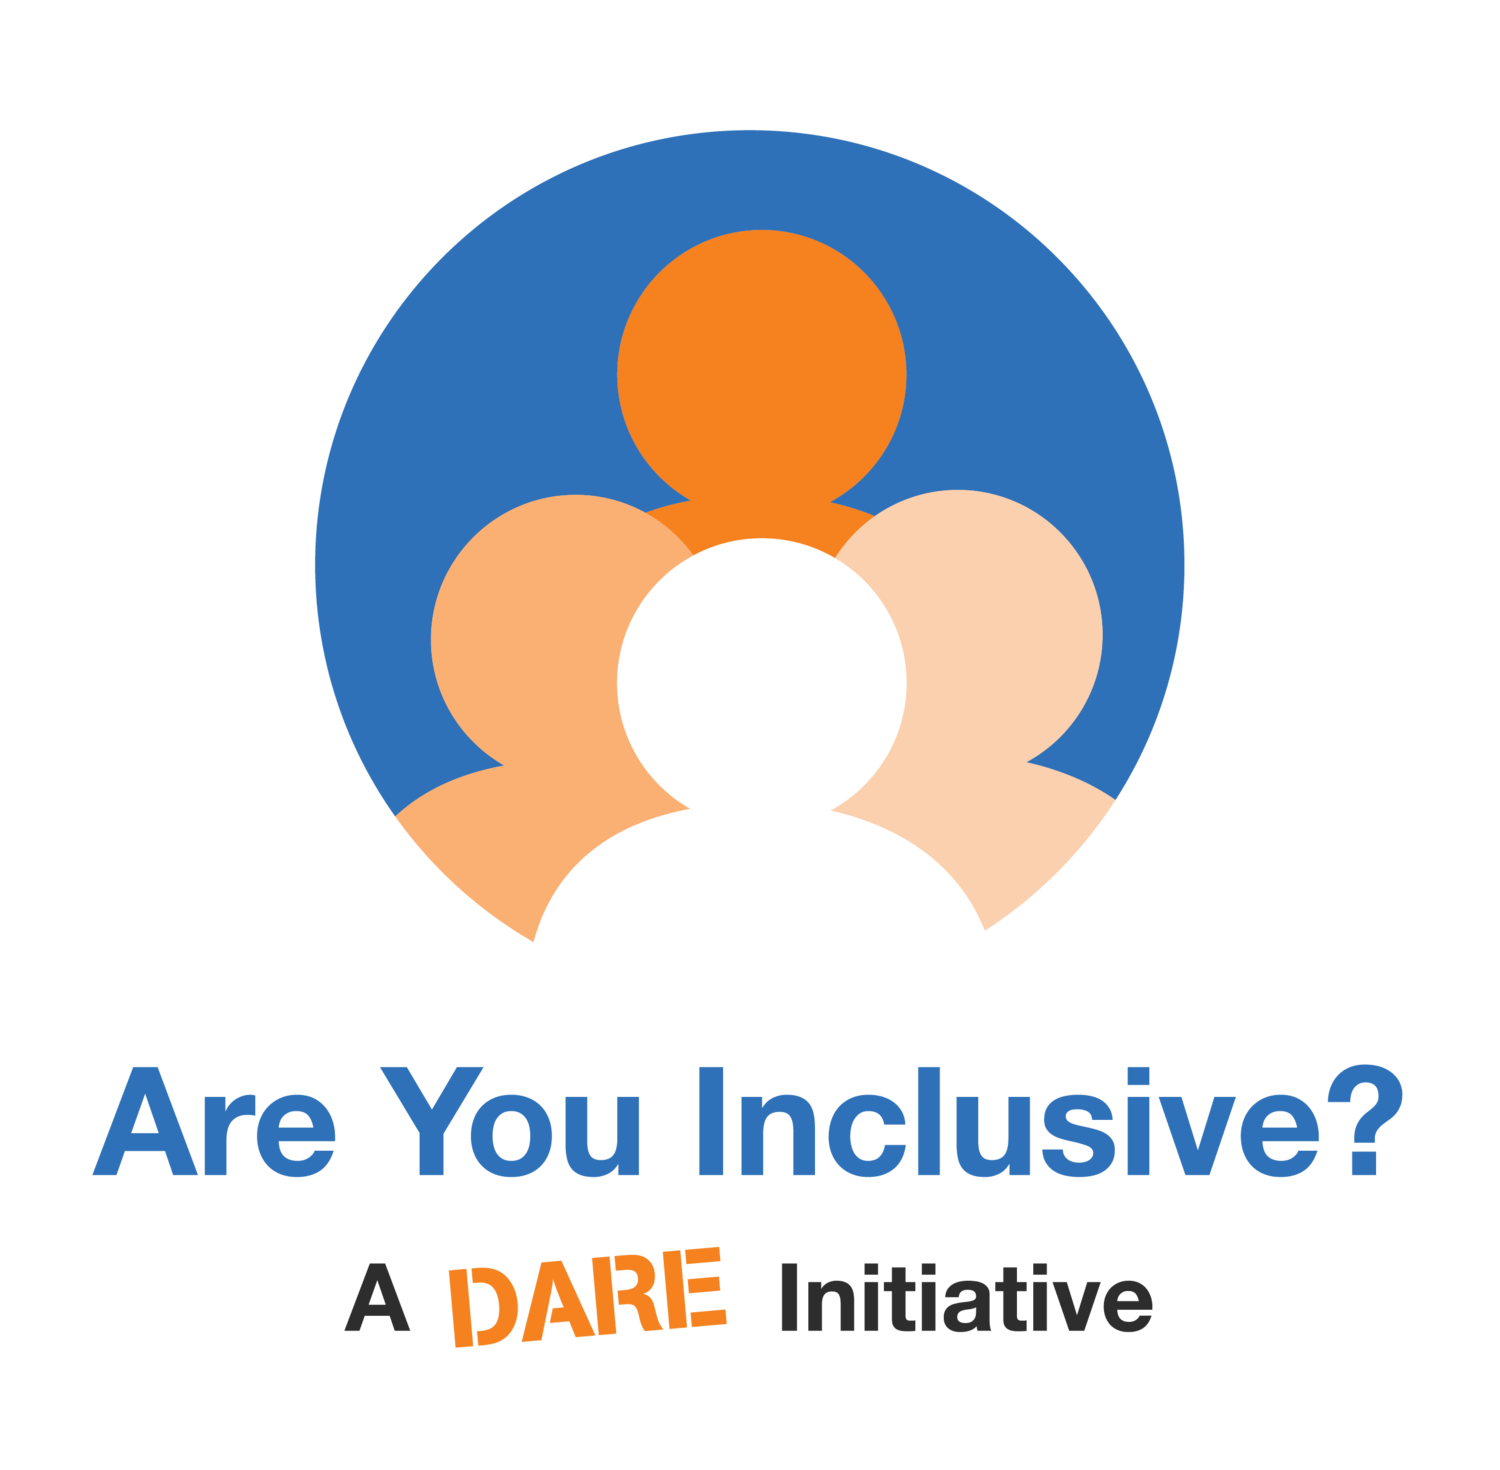 ARE YOU INCLUSIVE?